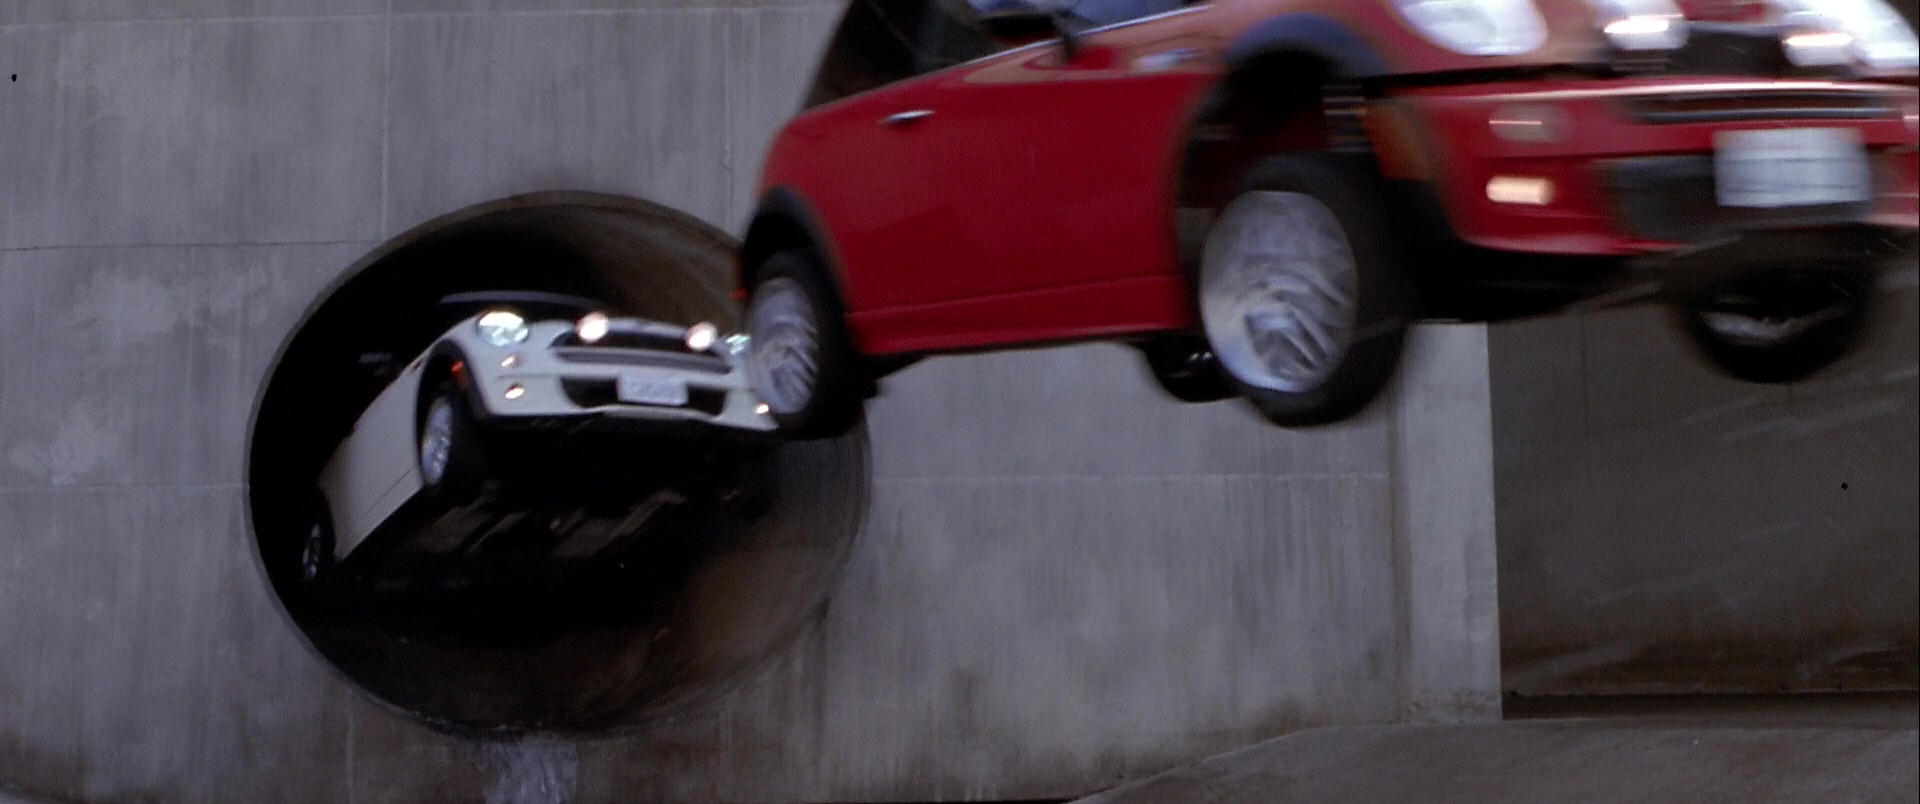 Mini Cooper S Cars In The Italian Job 2003 Movie